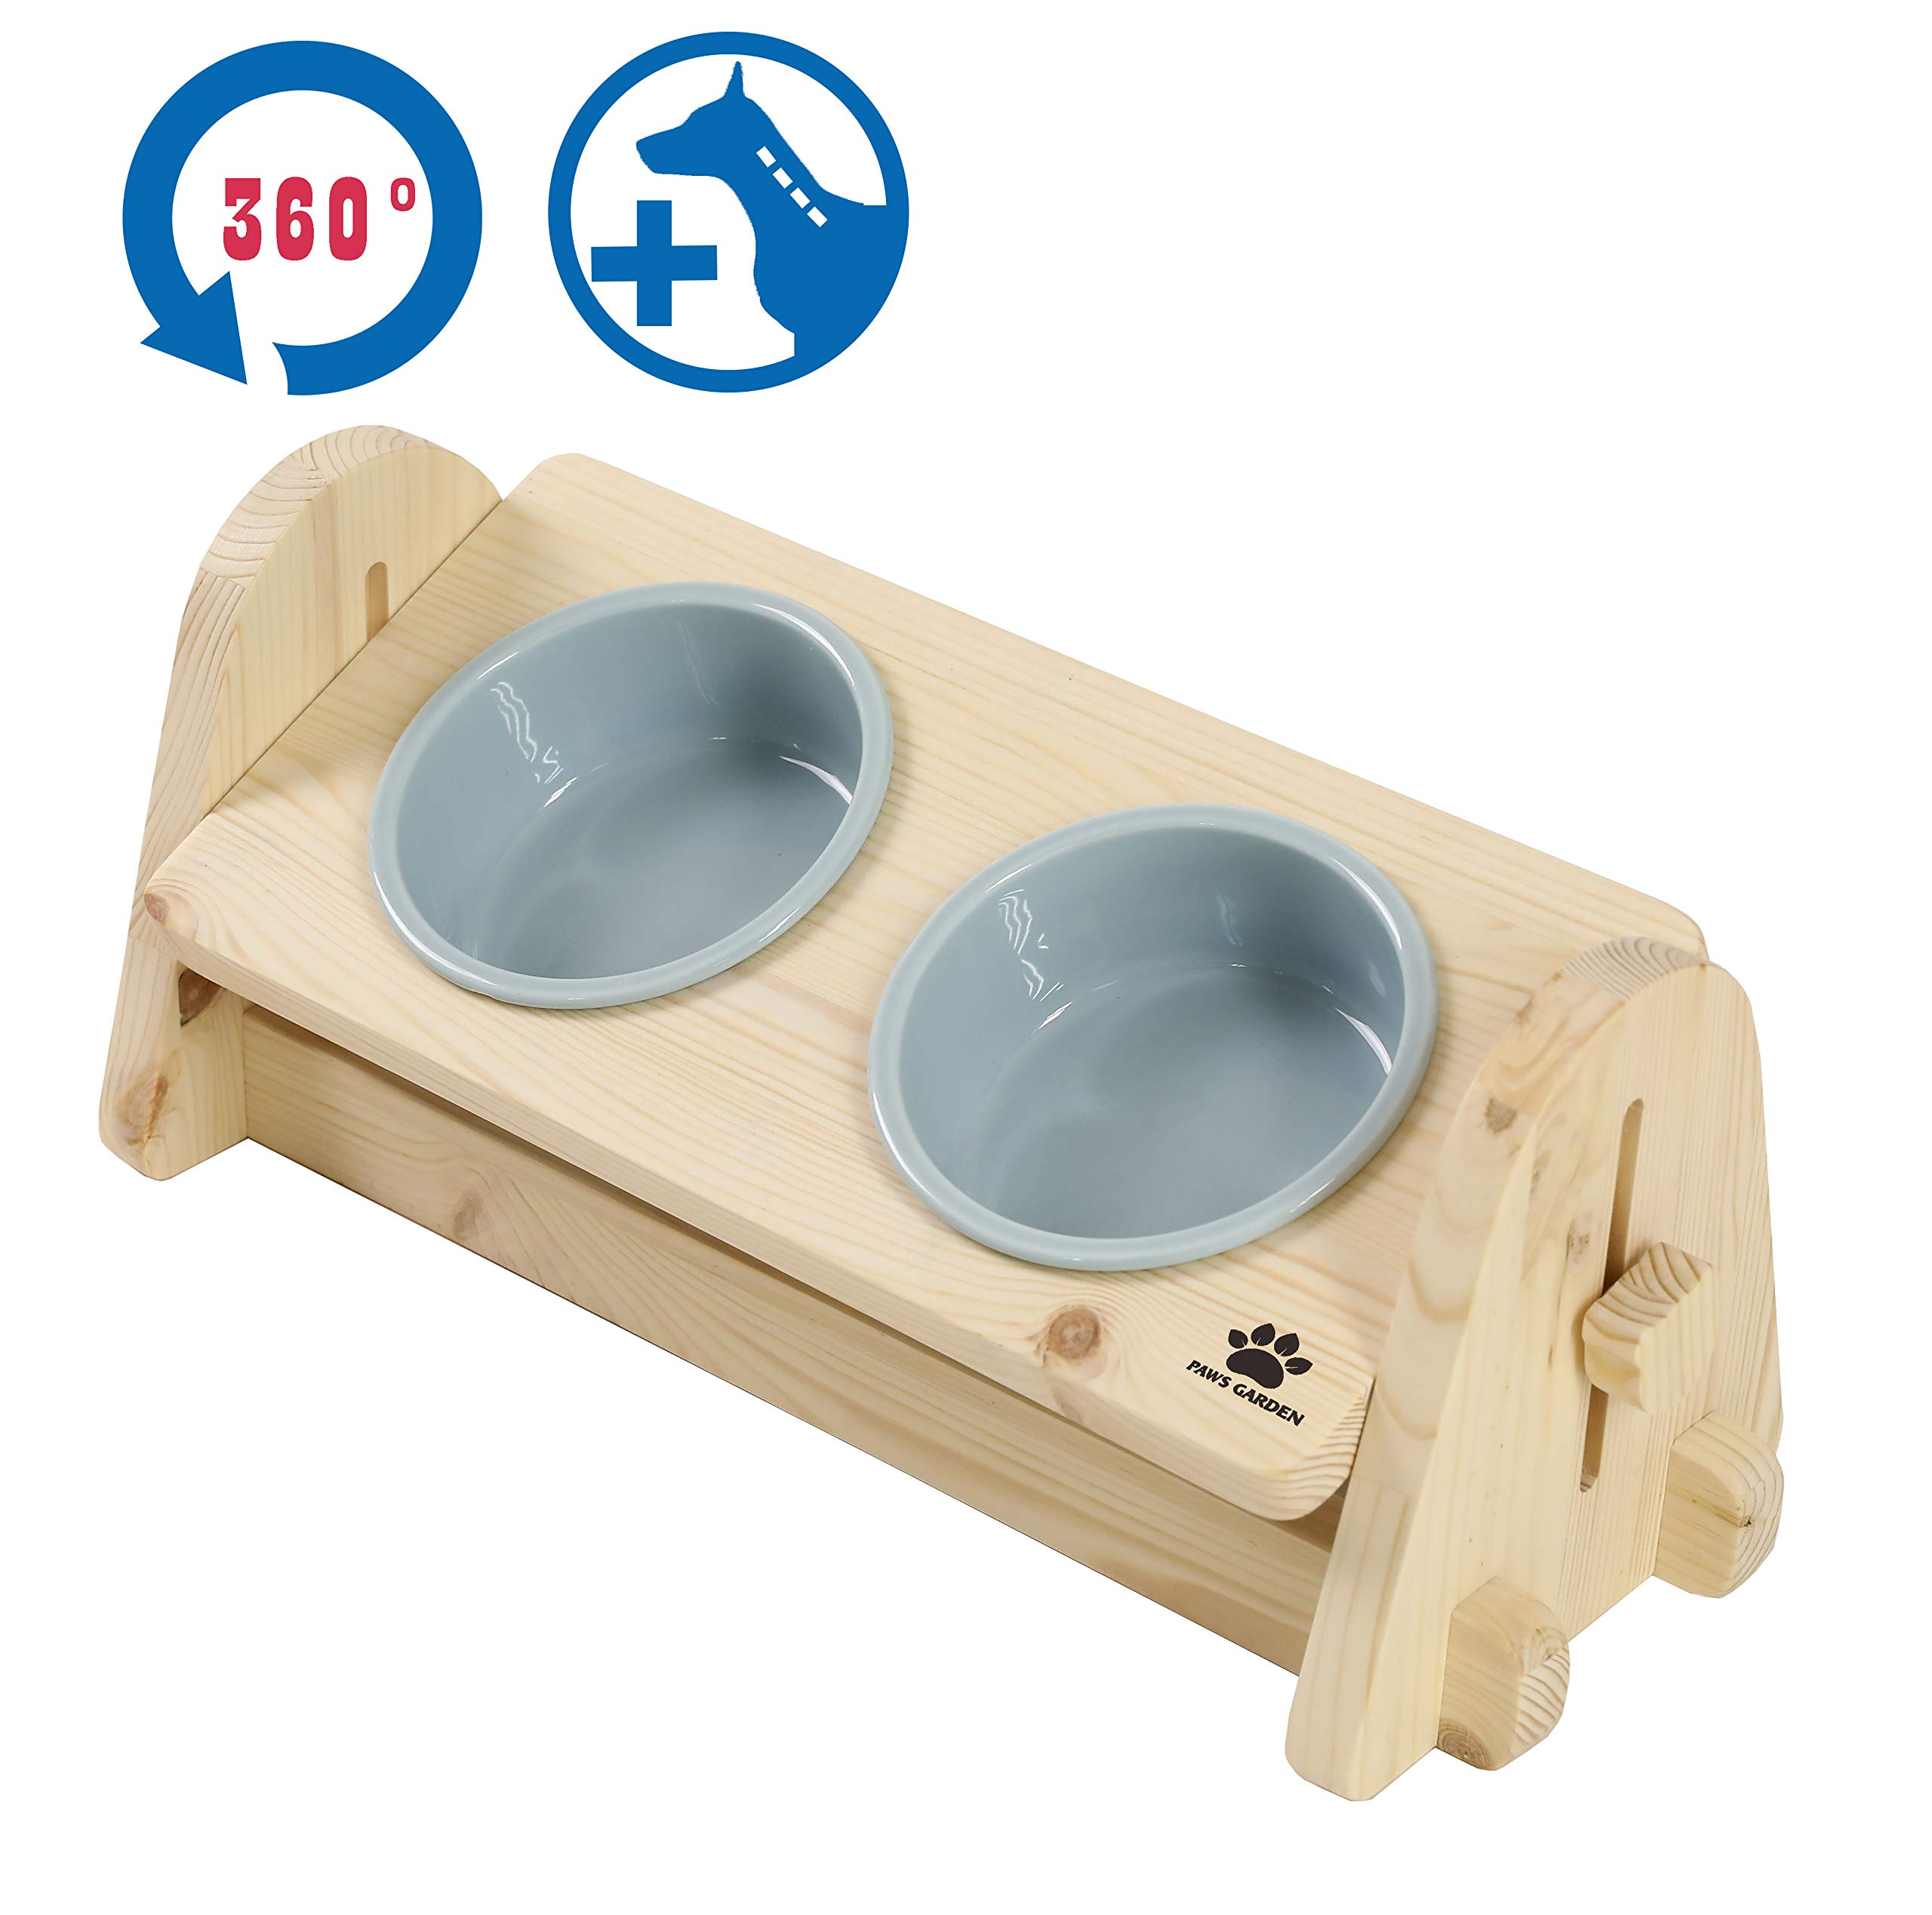 Paws Garden Premium 360º Angle Adjustable Elevated Wooden Pet Feeder, DIY Raised Feeder to aid Digestion for Dog, Cat with Double Ceramic Bowls (Sky Blue)